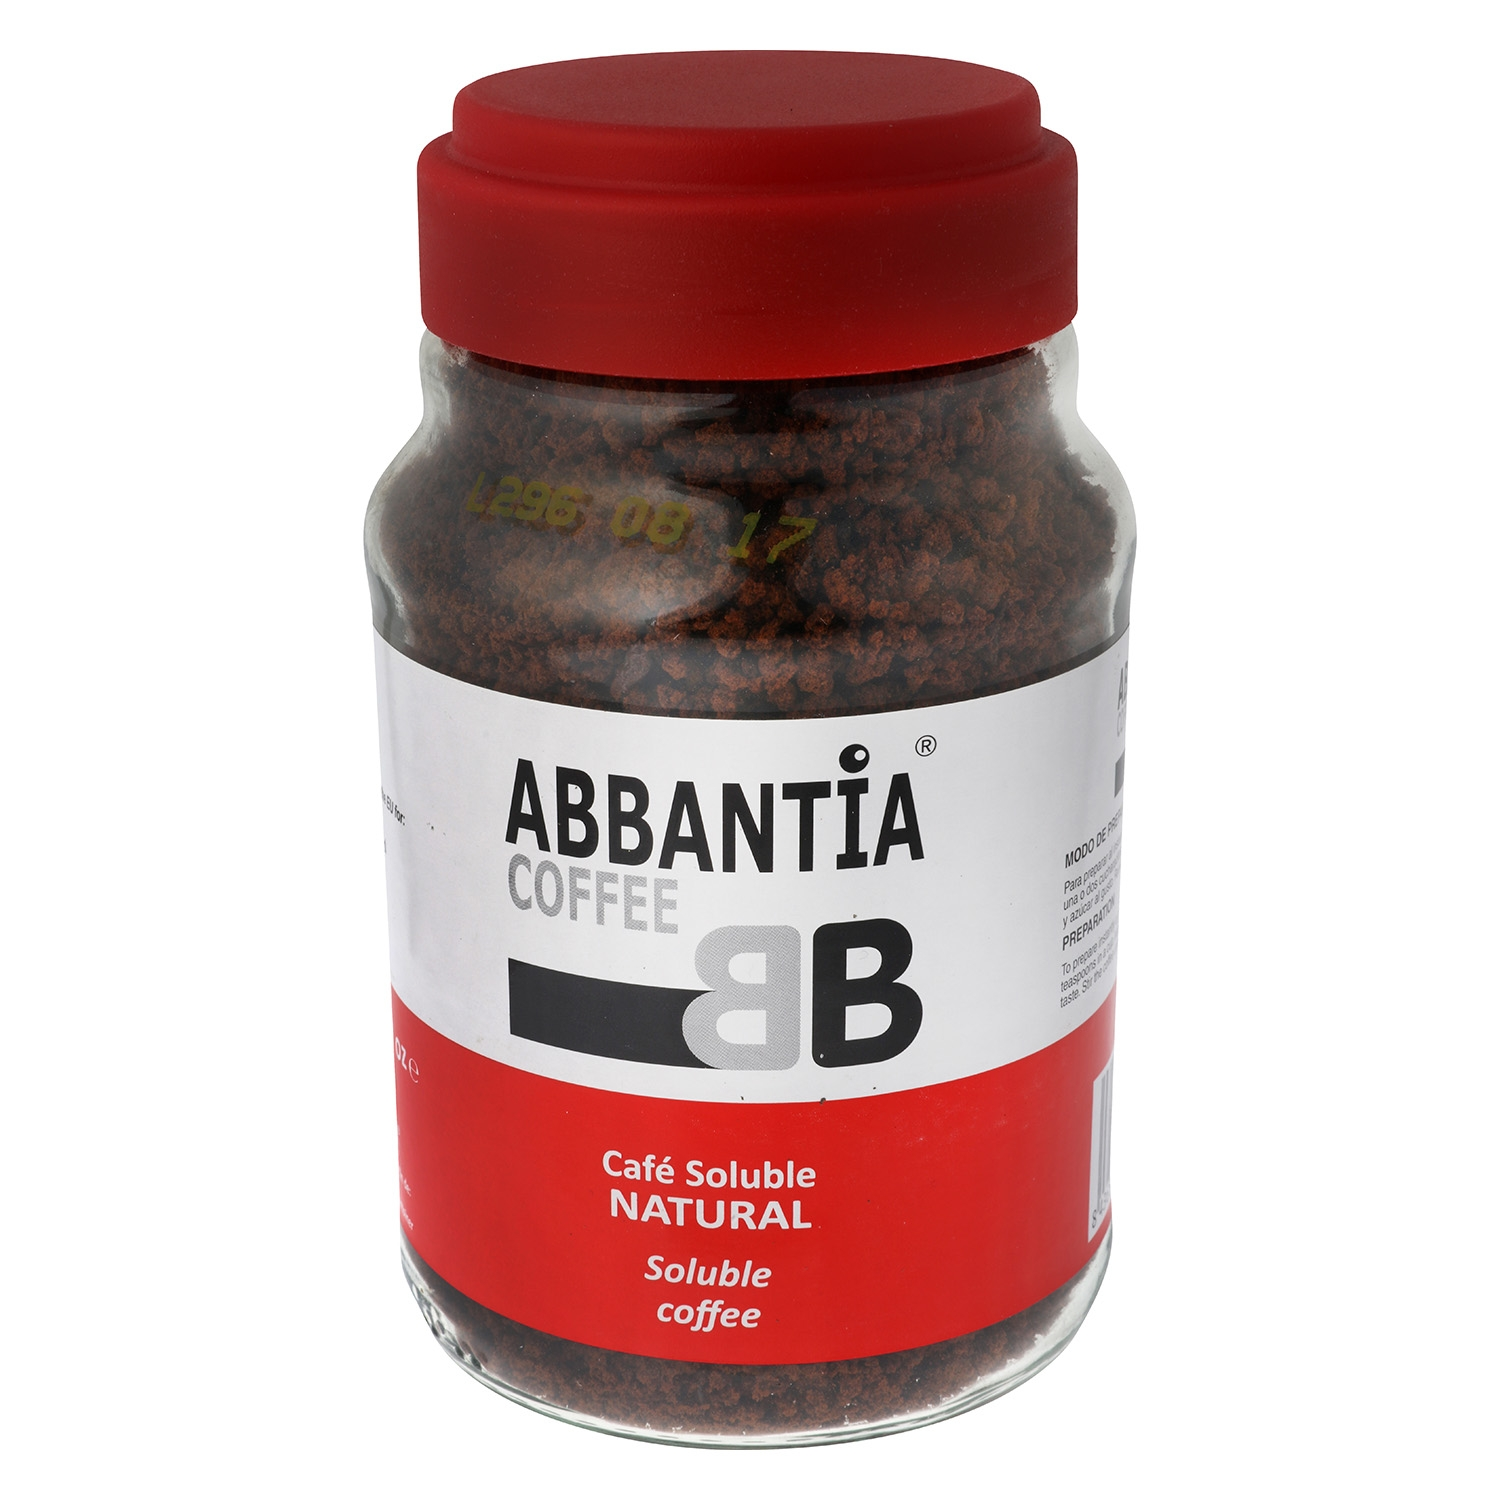 Café soluble natural Abbantia 200 g.